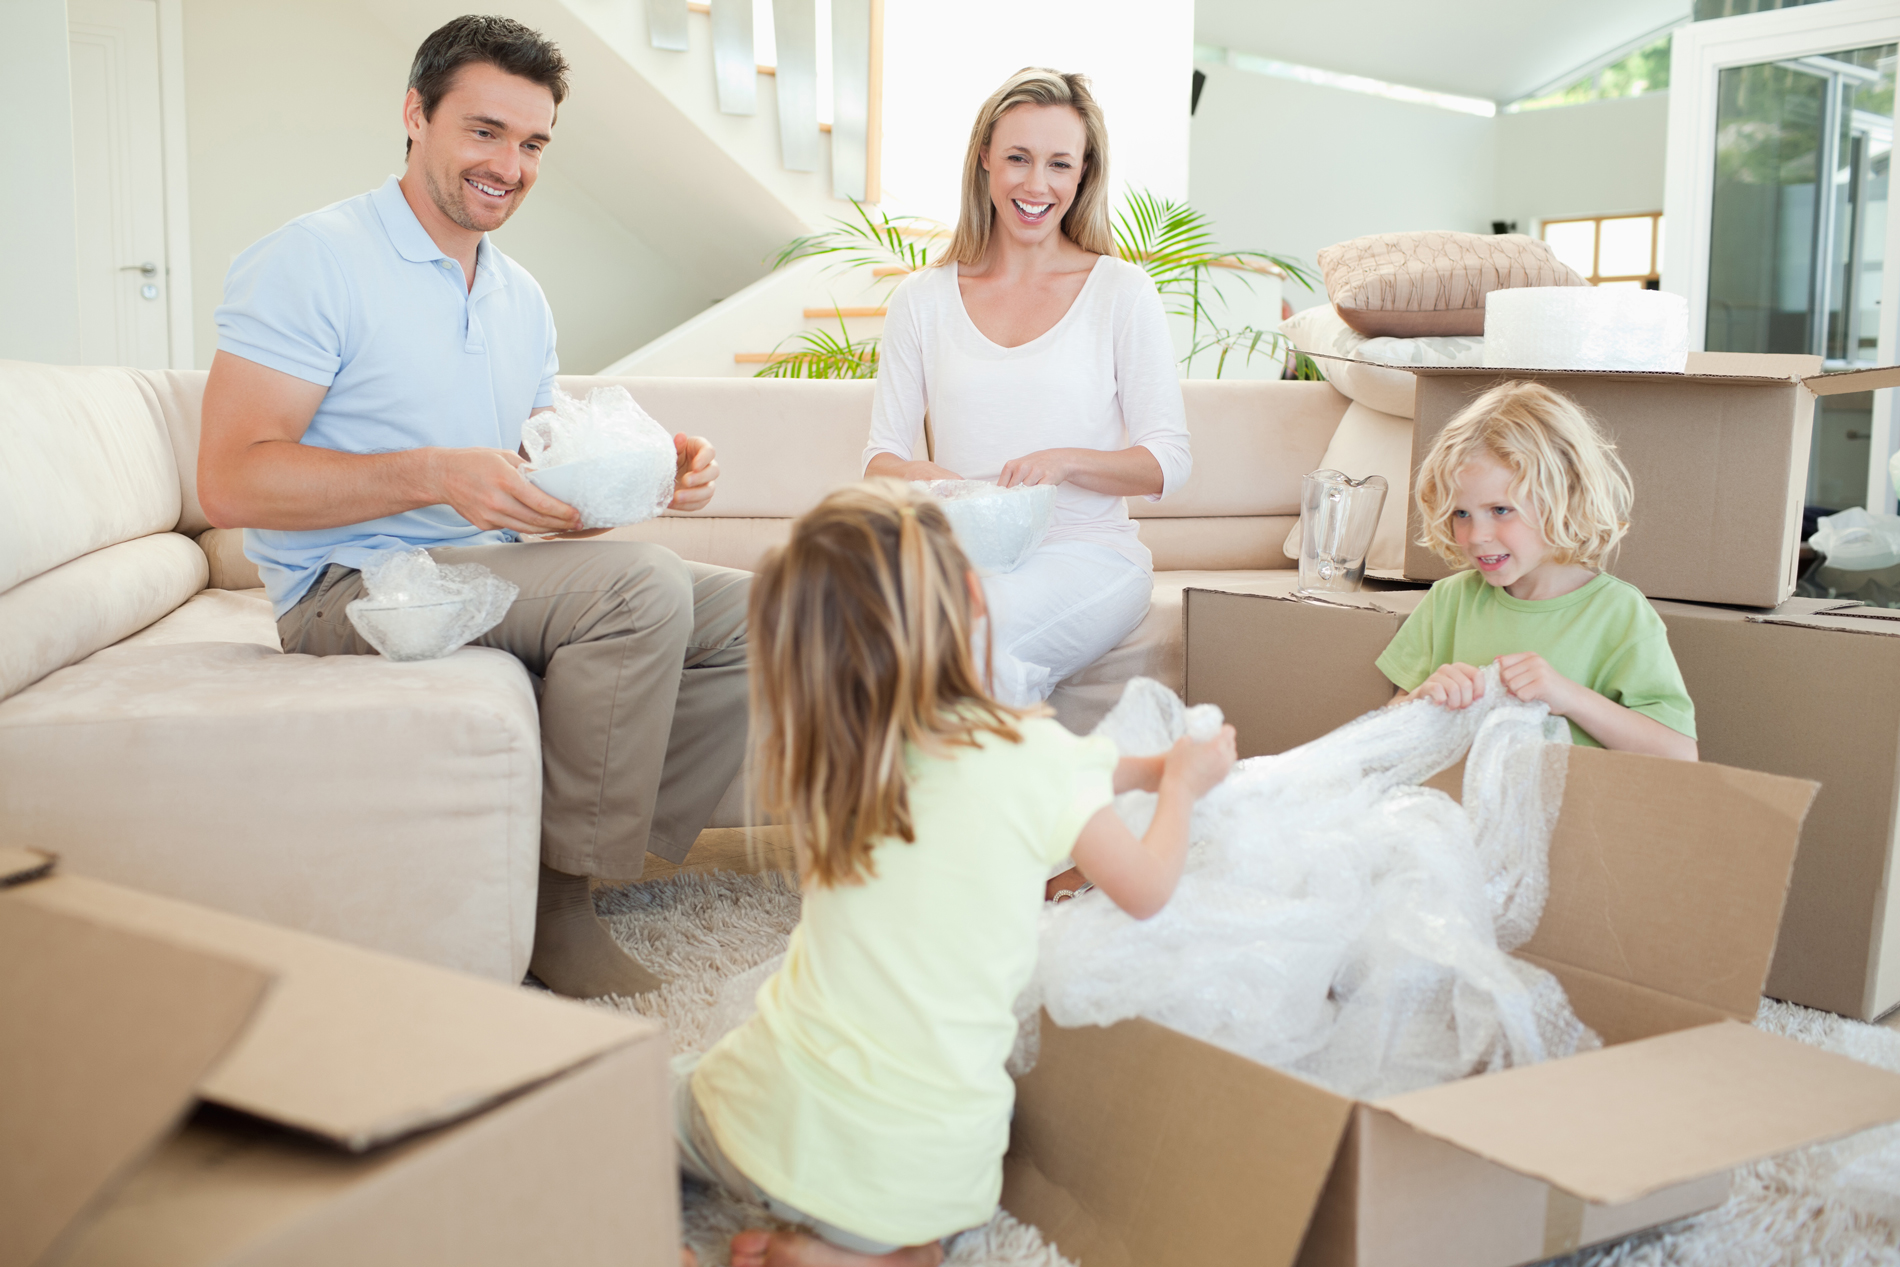 Family unpacking boxes in lounge